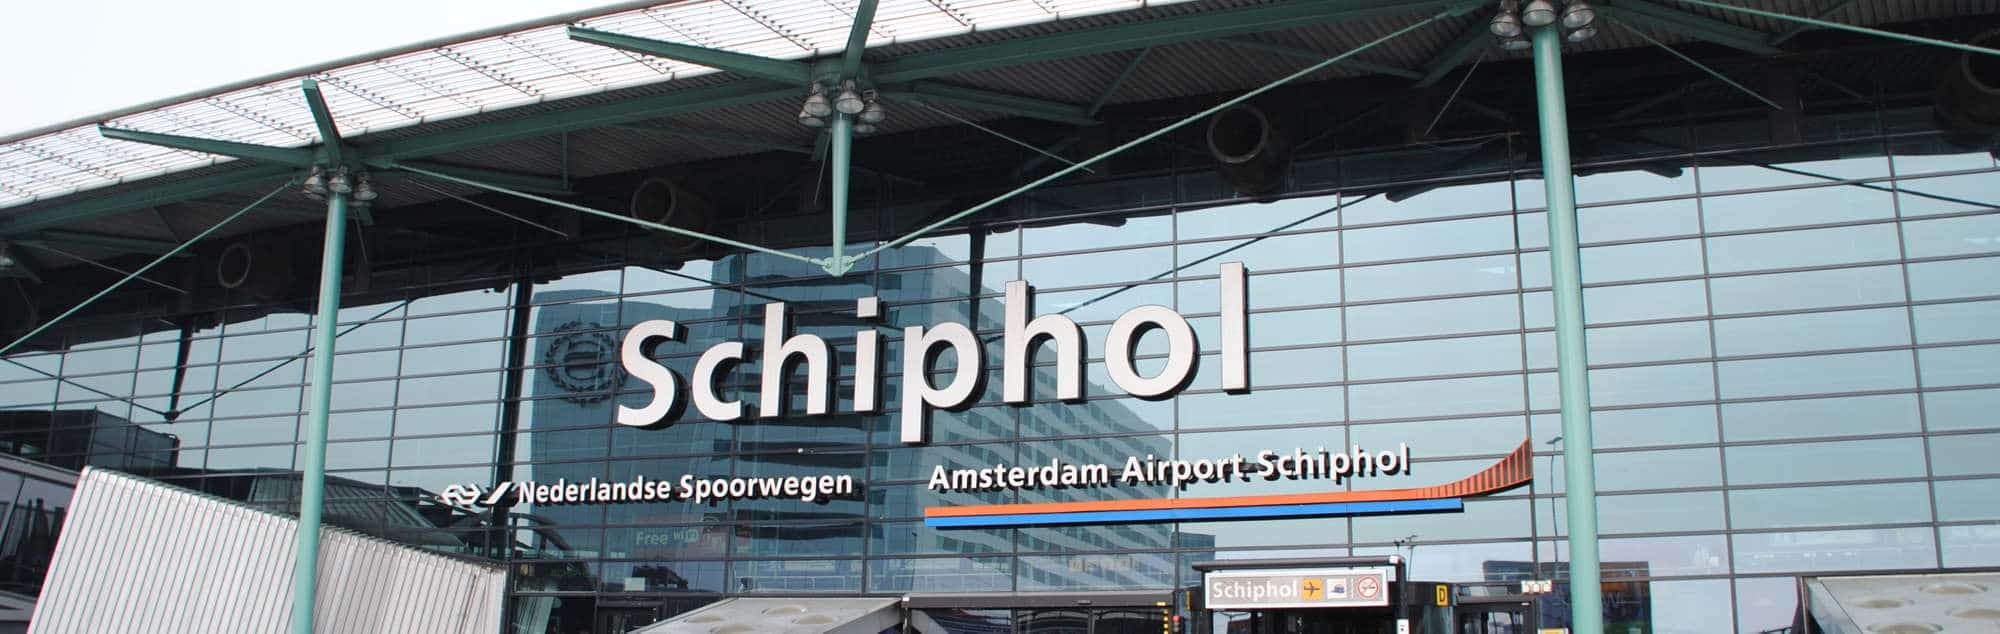 Airport amsterdam-schiphol